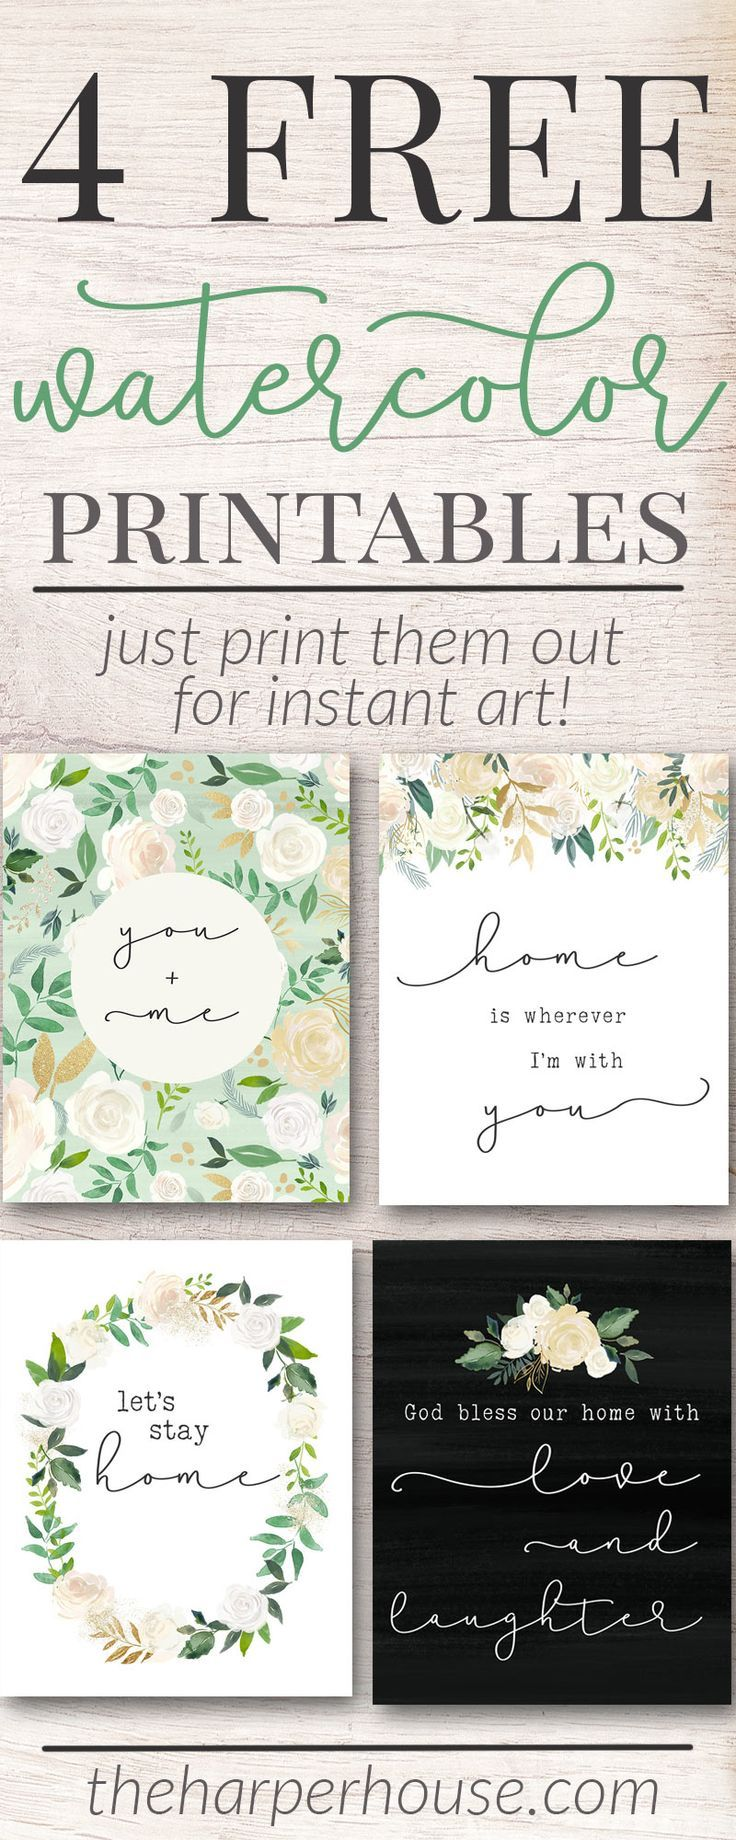 free printables - let's stay home | free art prints | pinterest